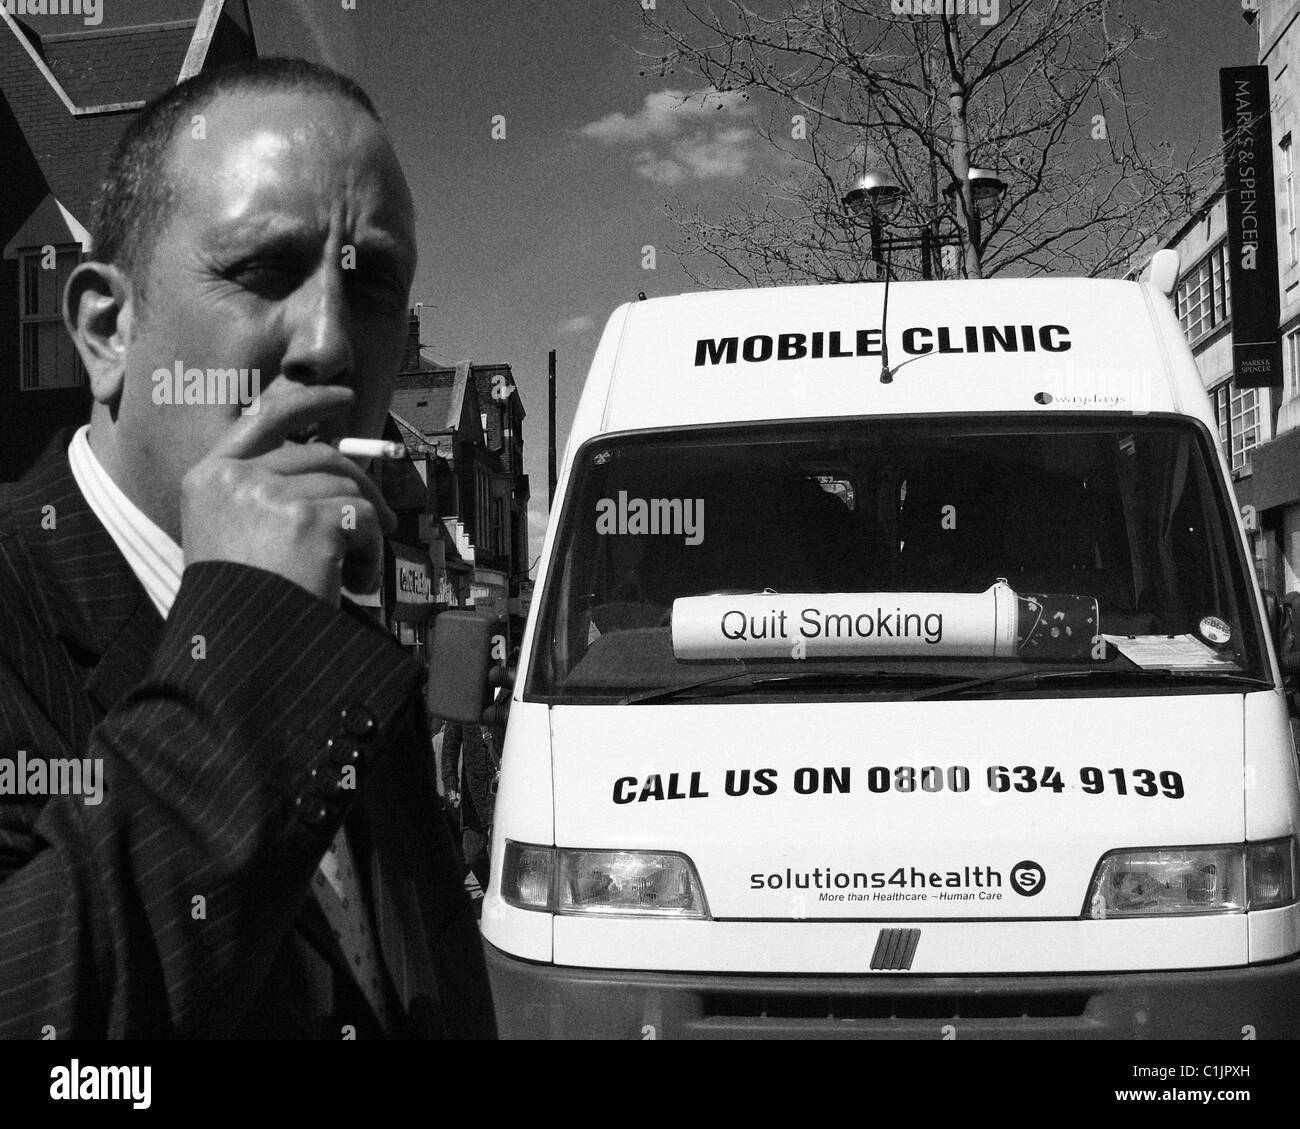 A smoker by a mobile clinic - Stock Image